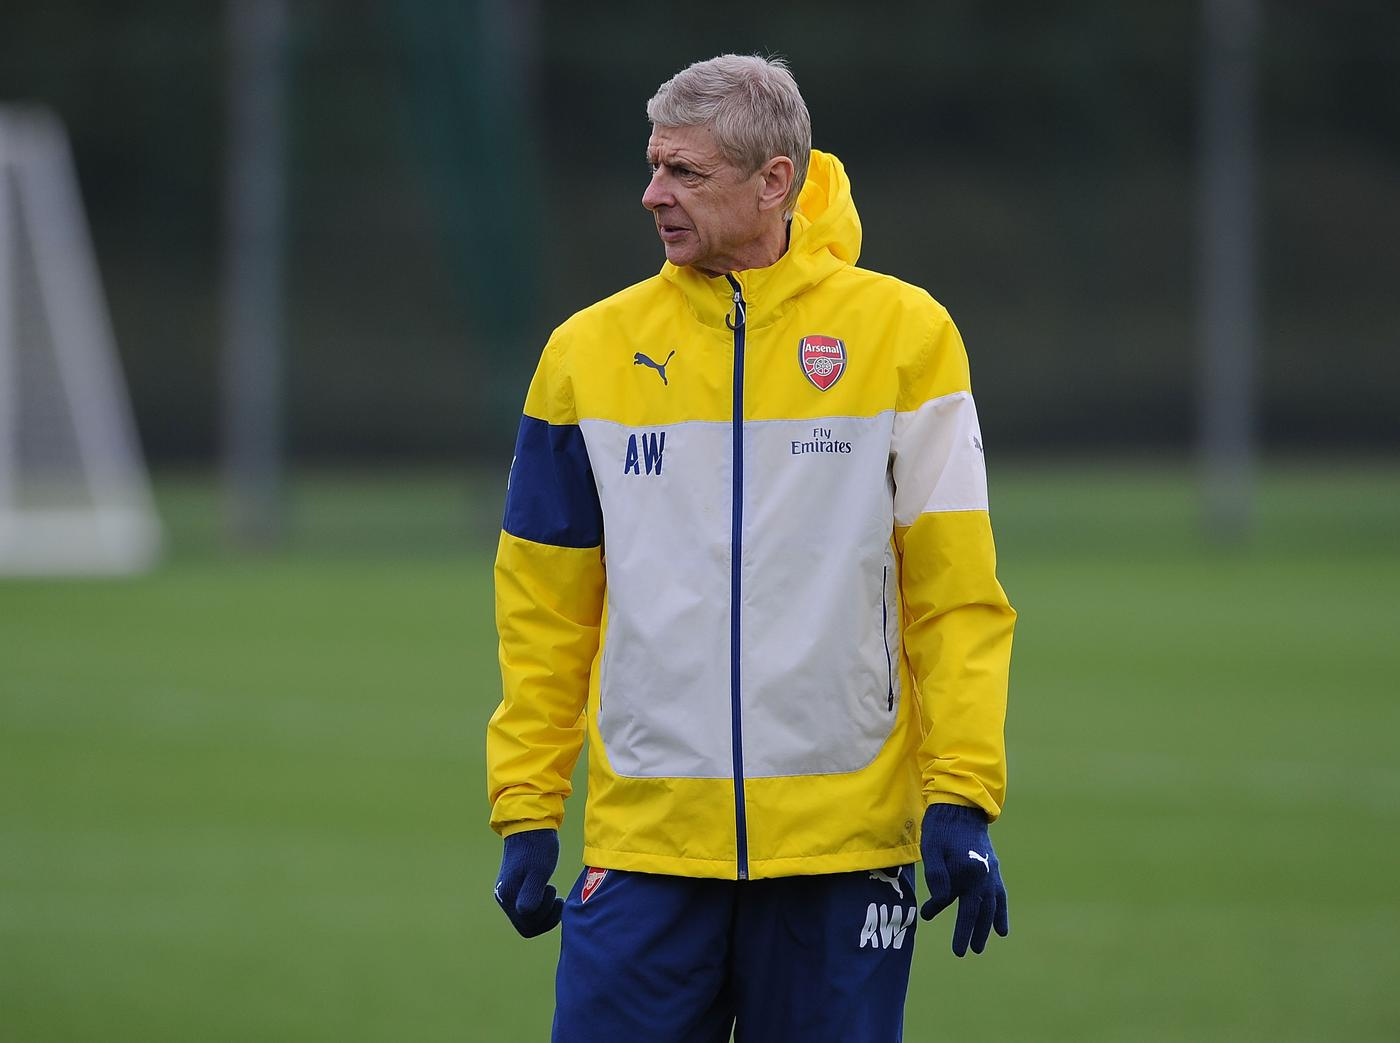 Arsene Wenger is beginning to sound like Del Boy from Only Fools and Horses at Arsenal with promise of future titles